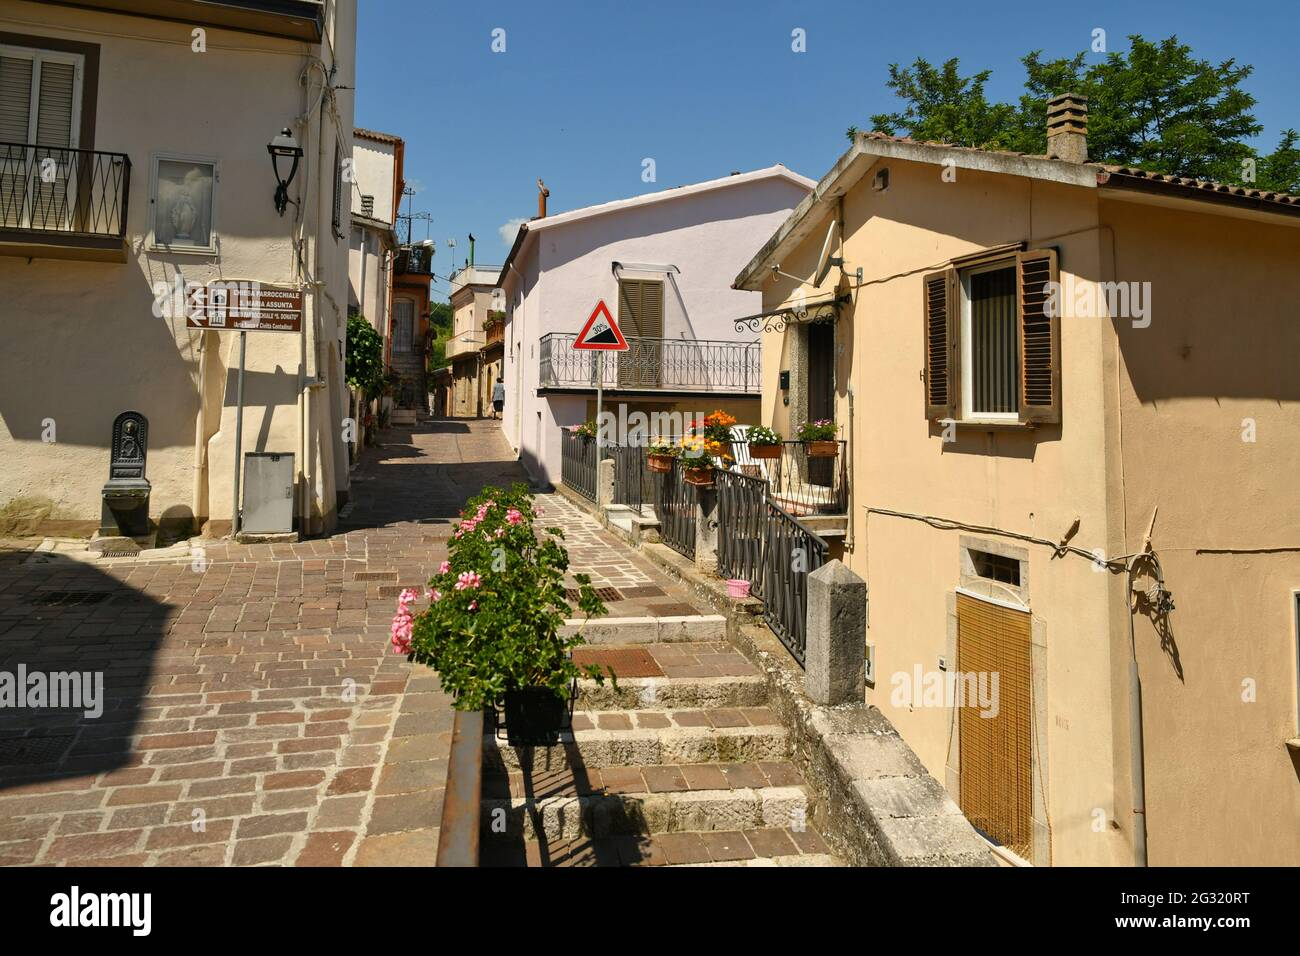 Ruvo del Monte, Italy, 06/12/2021. A small street between the old houses of a medieval village in the Basilicata region. Stock Photo